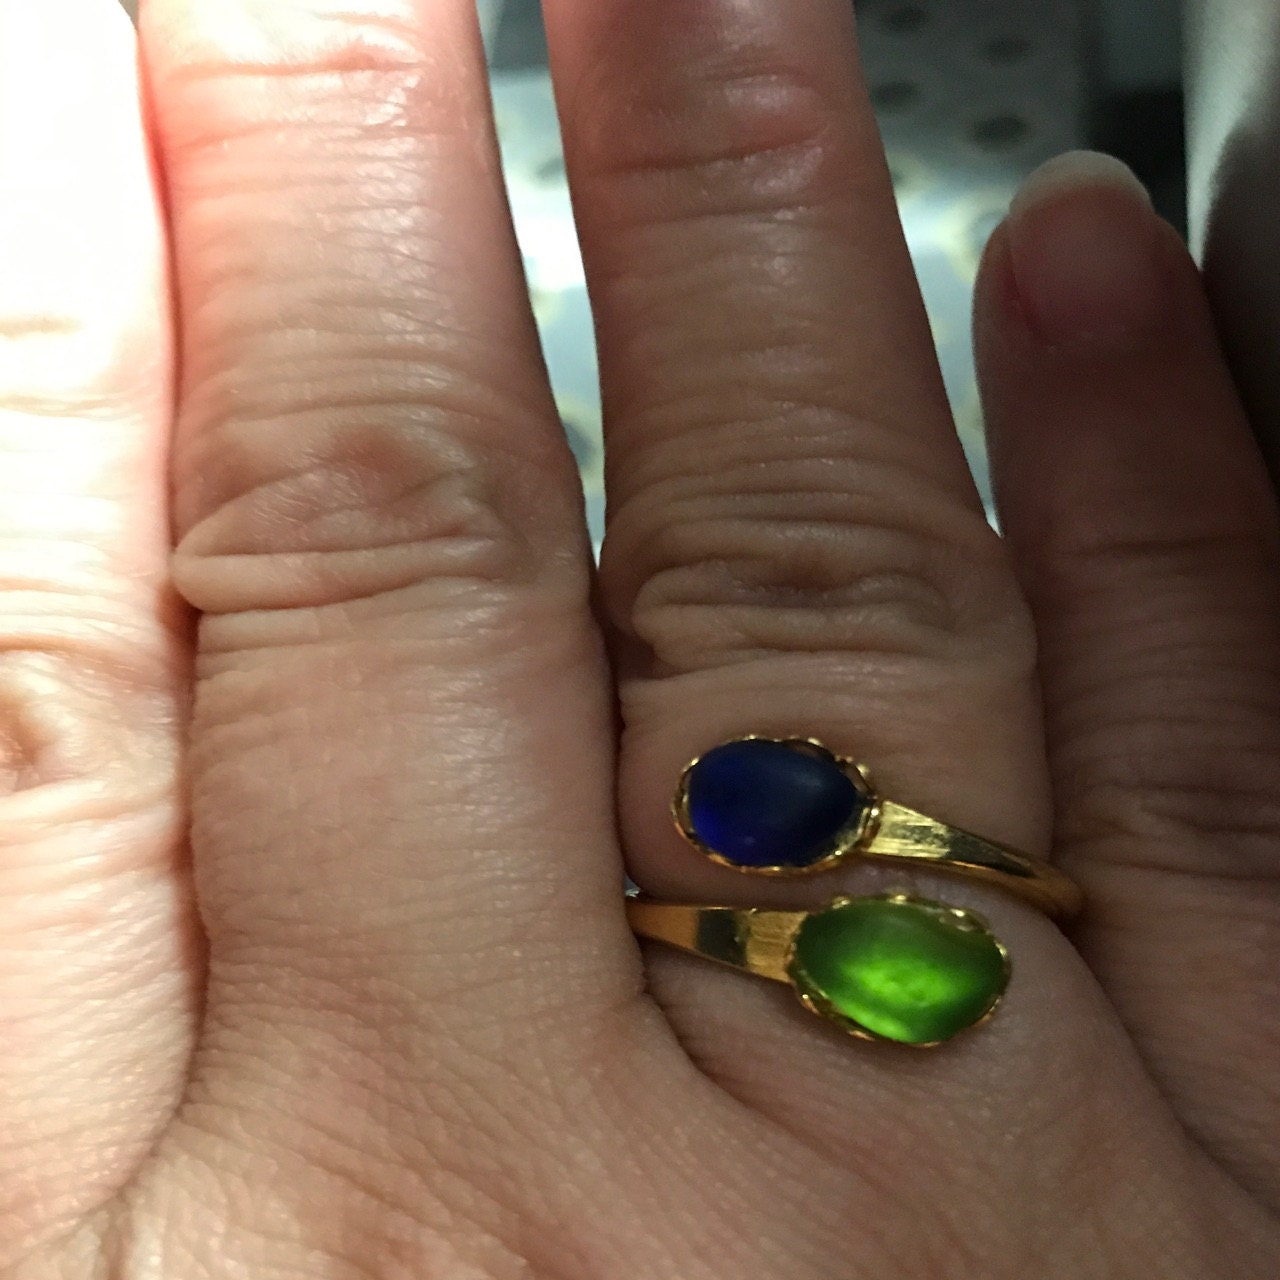 sandra grigsby added a photo of their purchase